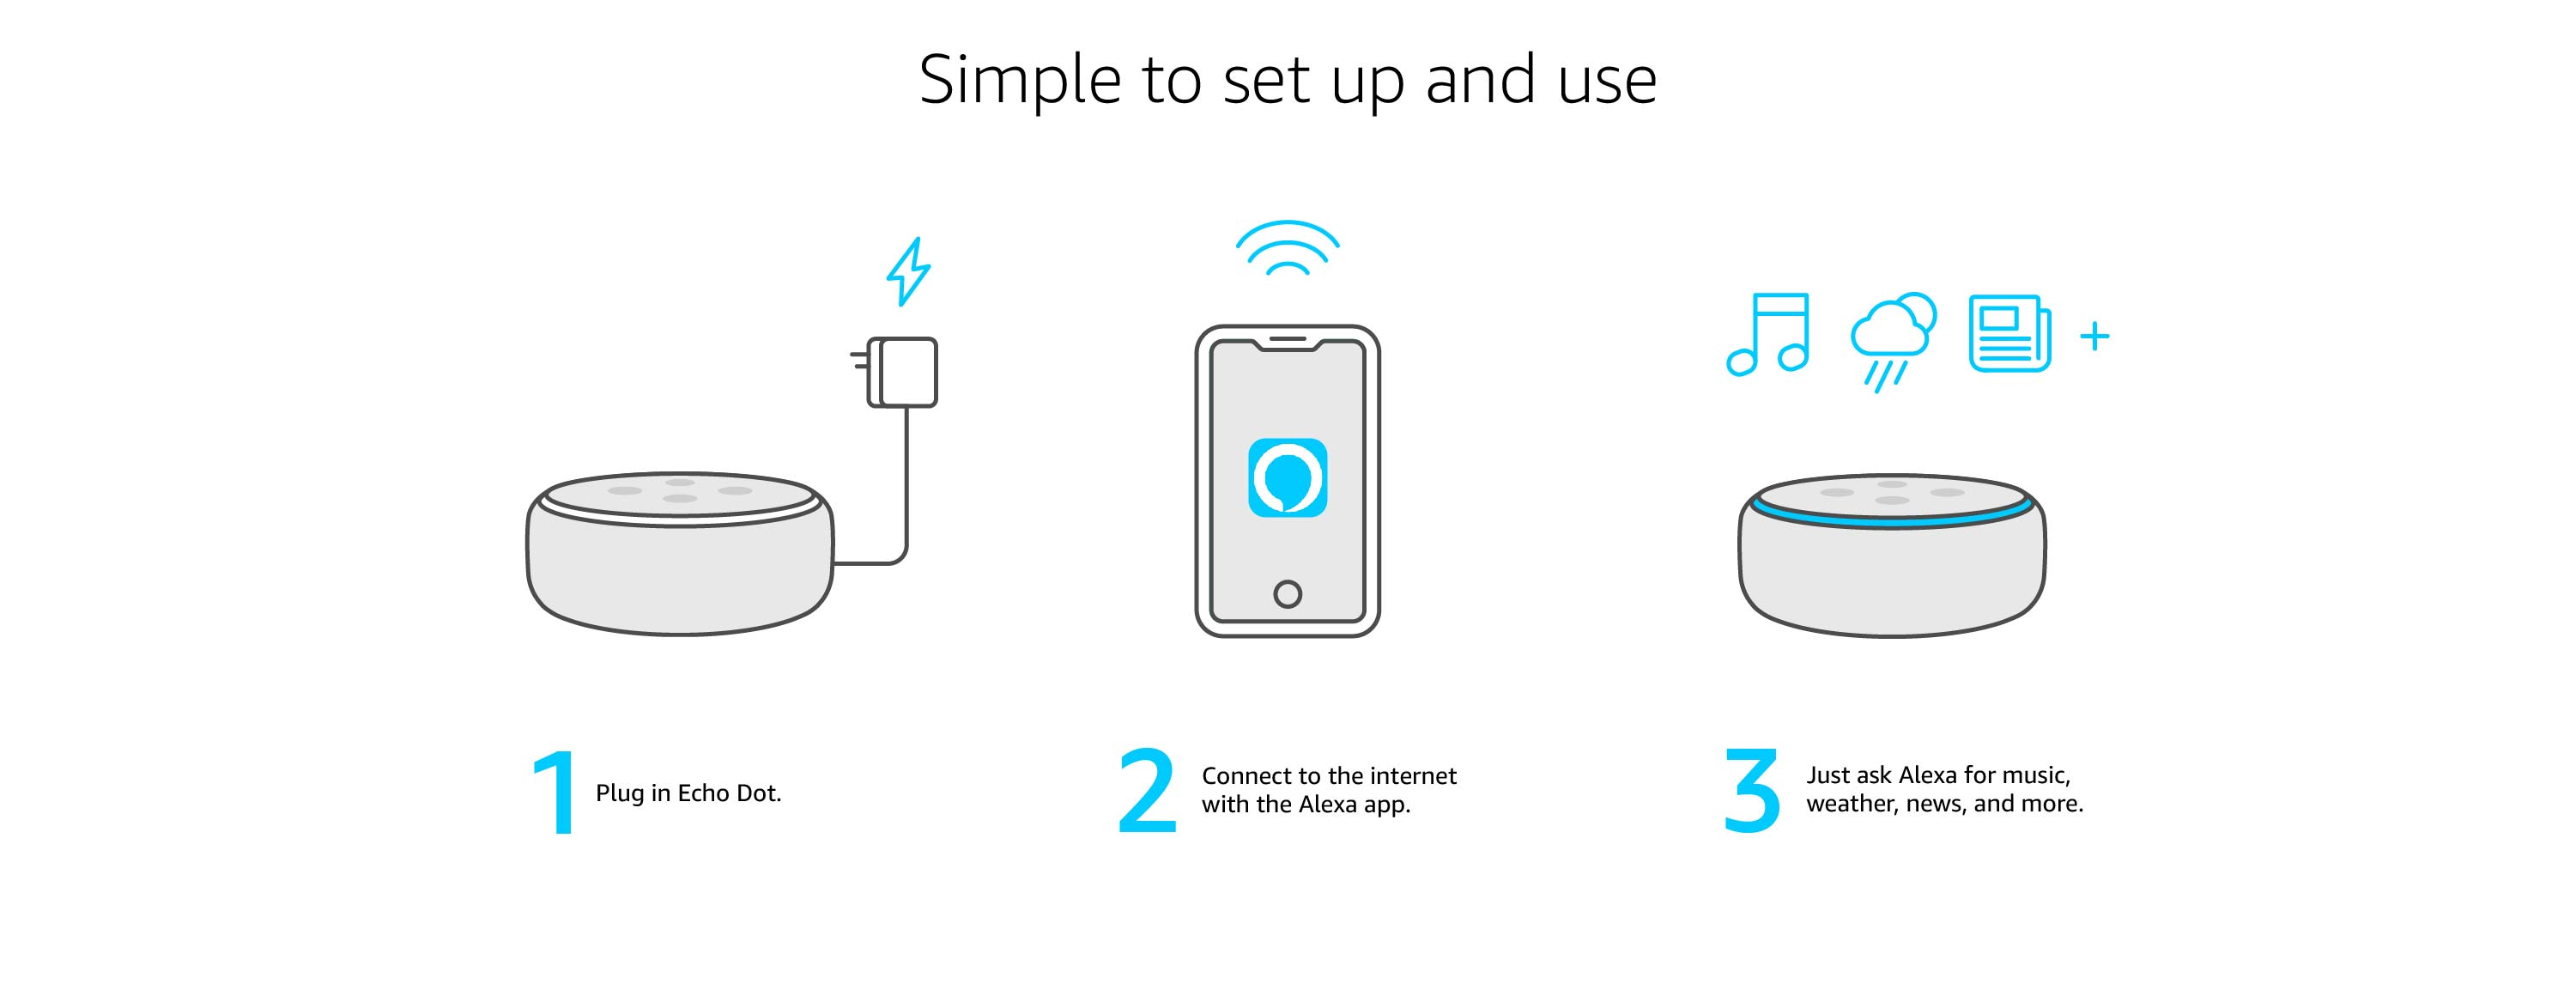 Echo Dot is easy to set up and use in as little as three steps